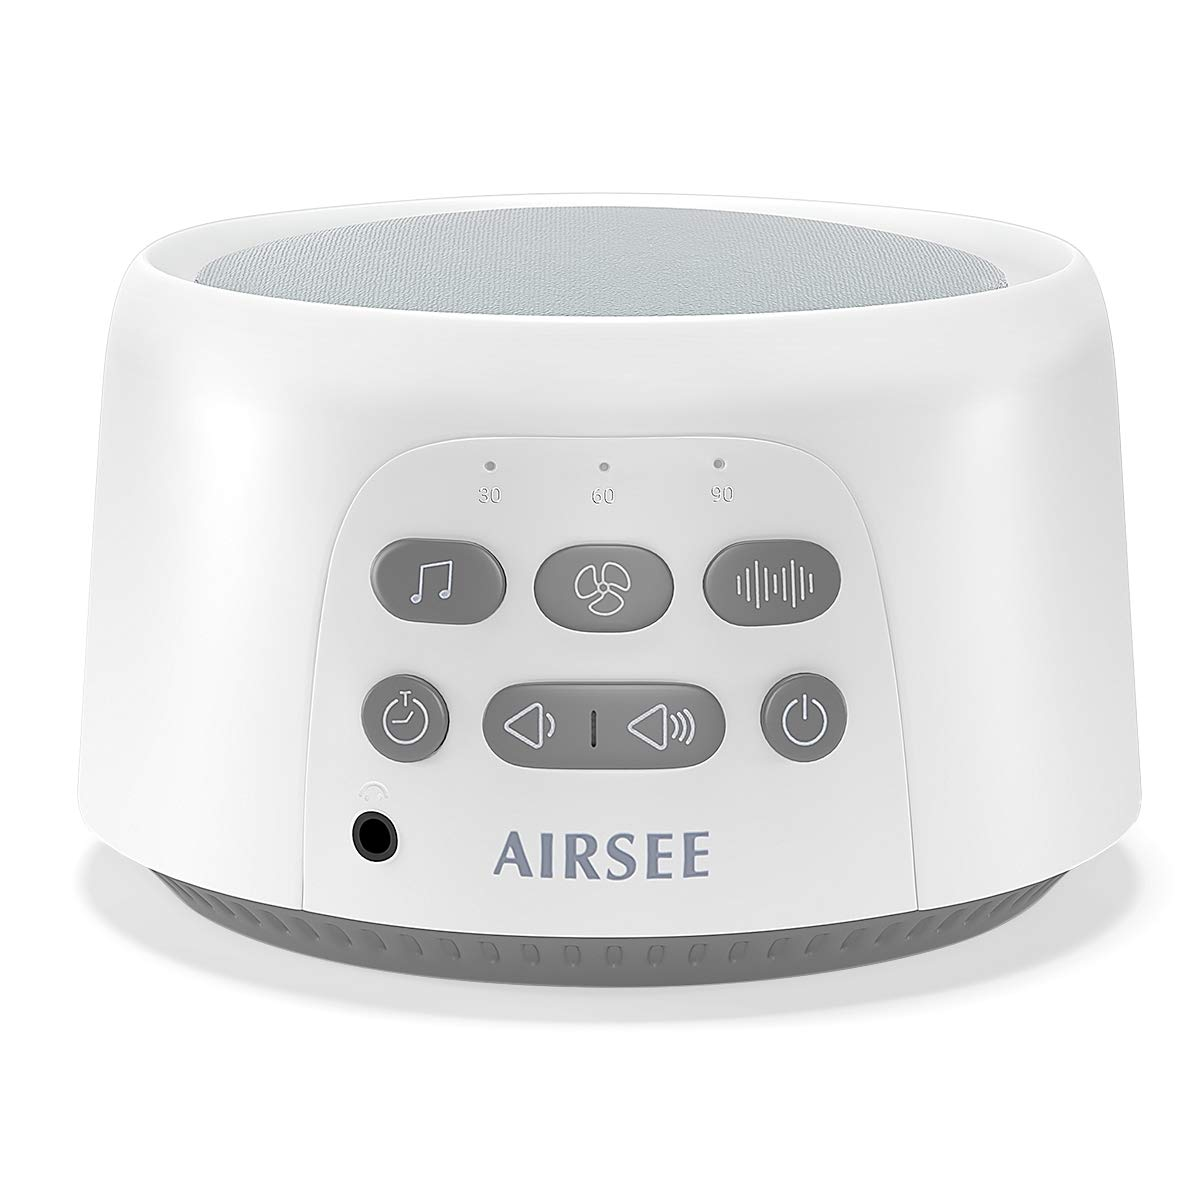 AIRSEE White Noise Machine - Portable Sound Machine for Sleeping with High Quality Speaker, 7 Natural and Soothing Sounds, Baby Sound Machine, Portable Sleep Sound Therapy for Home, Baby